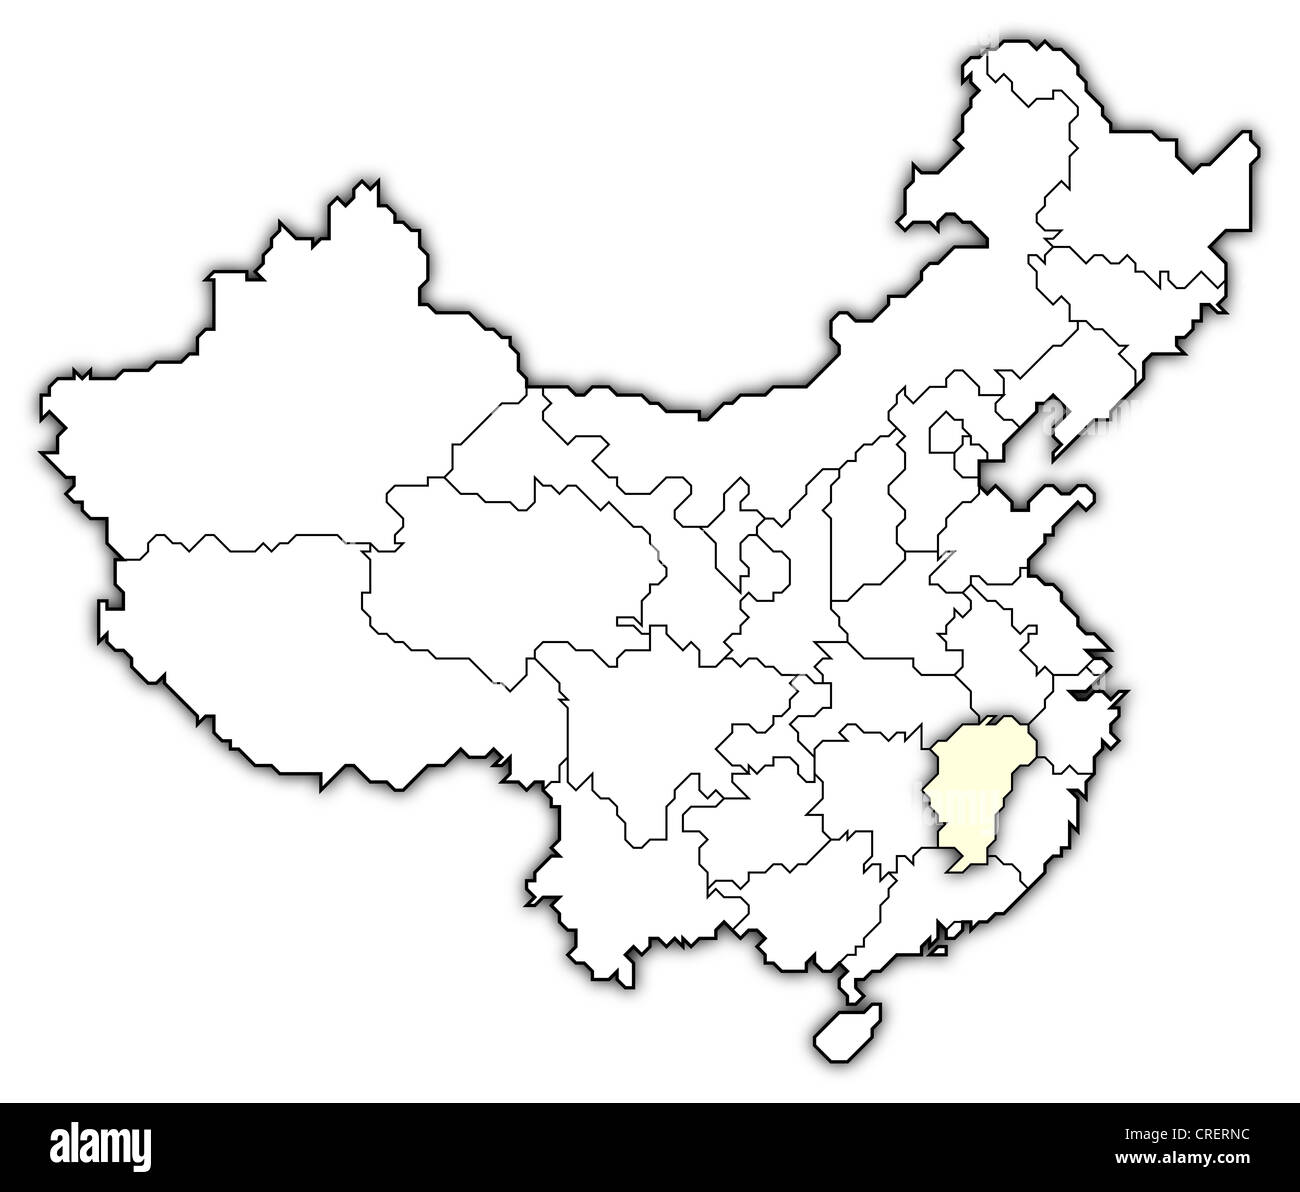 Political Map Of China With The Several Provinces Where